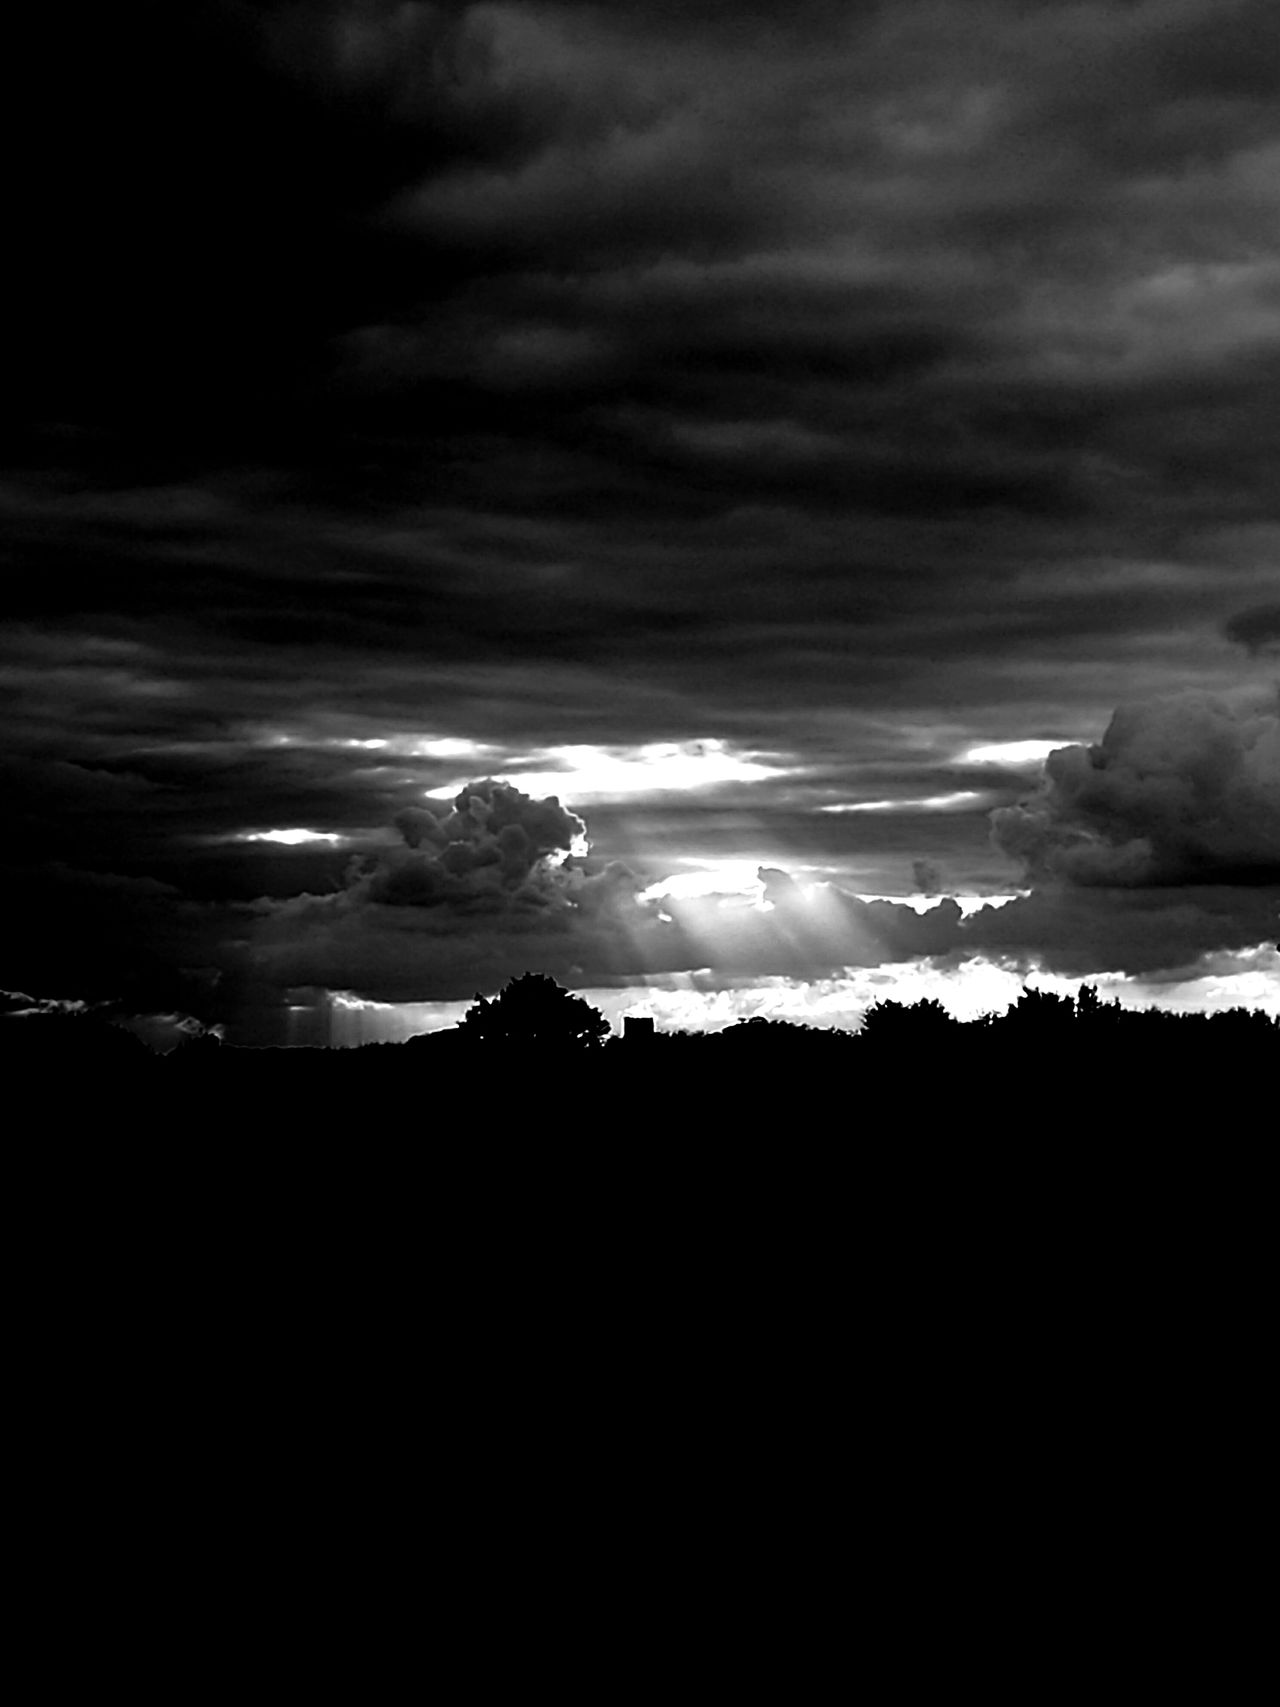 With the Sunlight streaming onto the Church...Monochrome Photography Silhouette Cloudy Storm Cloud Calm Outline Church Sunset